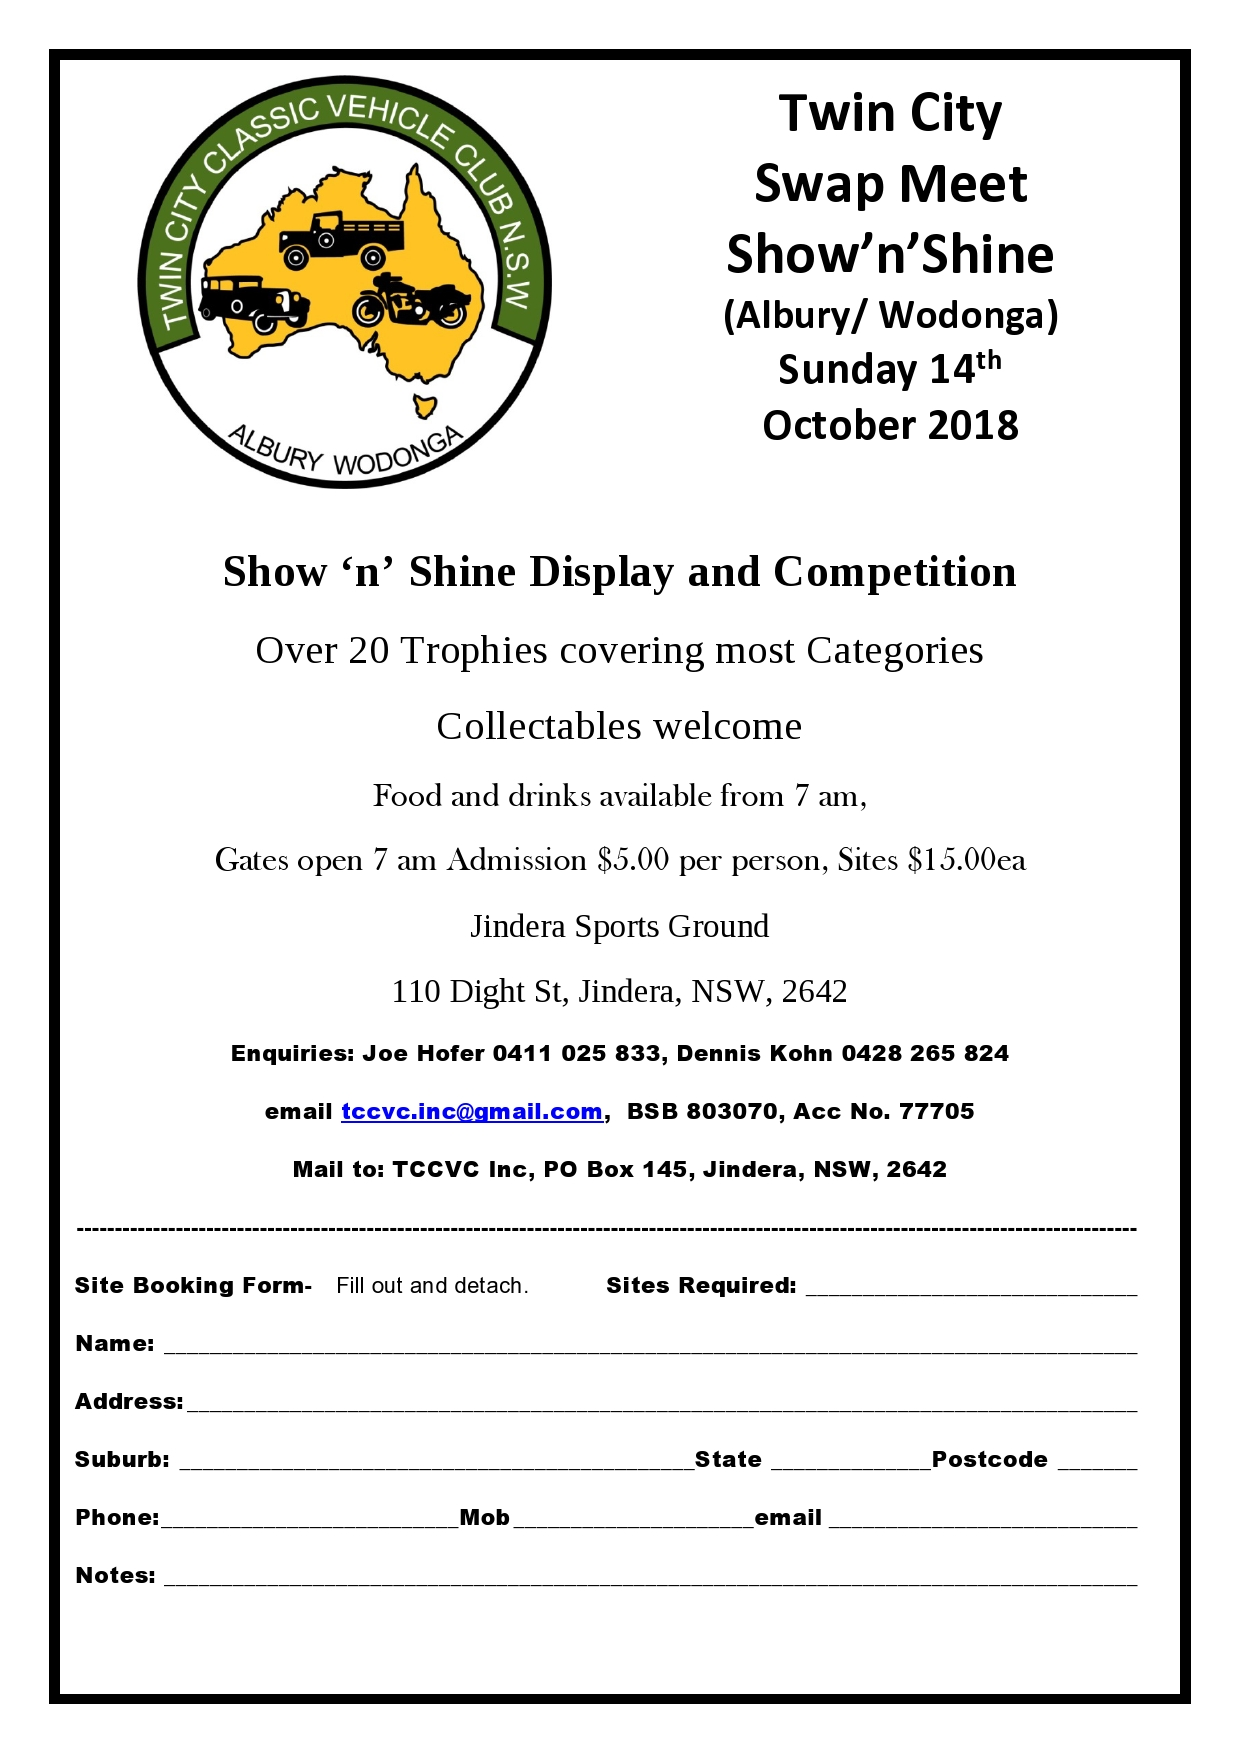 swap meet bendigo 2015 form